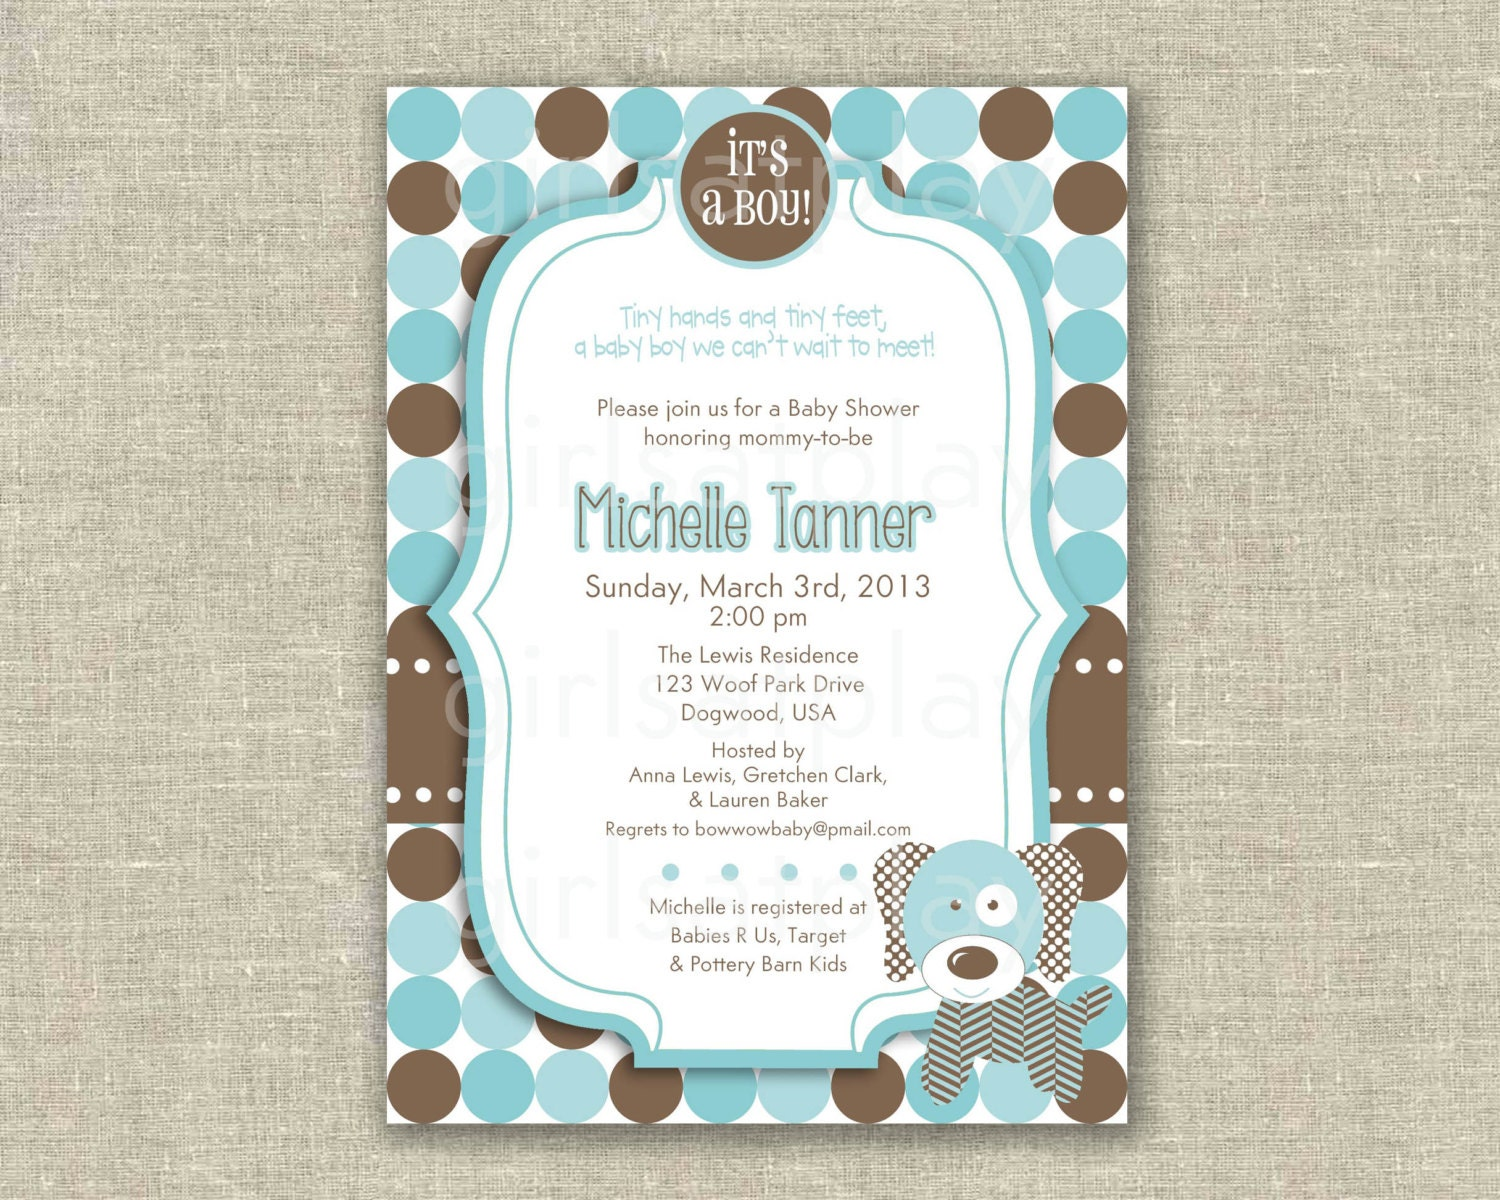 Baby Shower Invitations Templates Free For Word as awesome invitation example